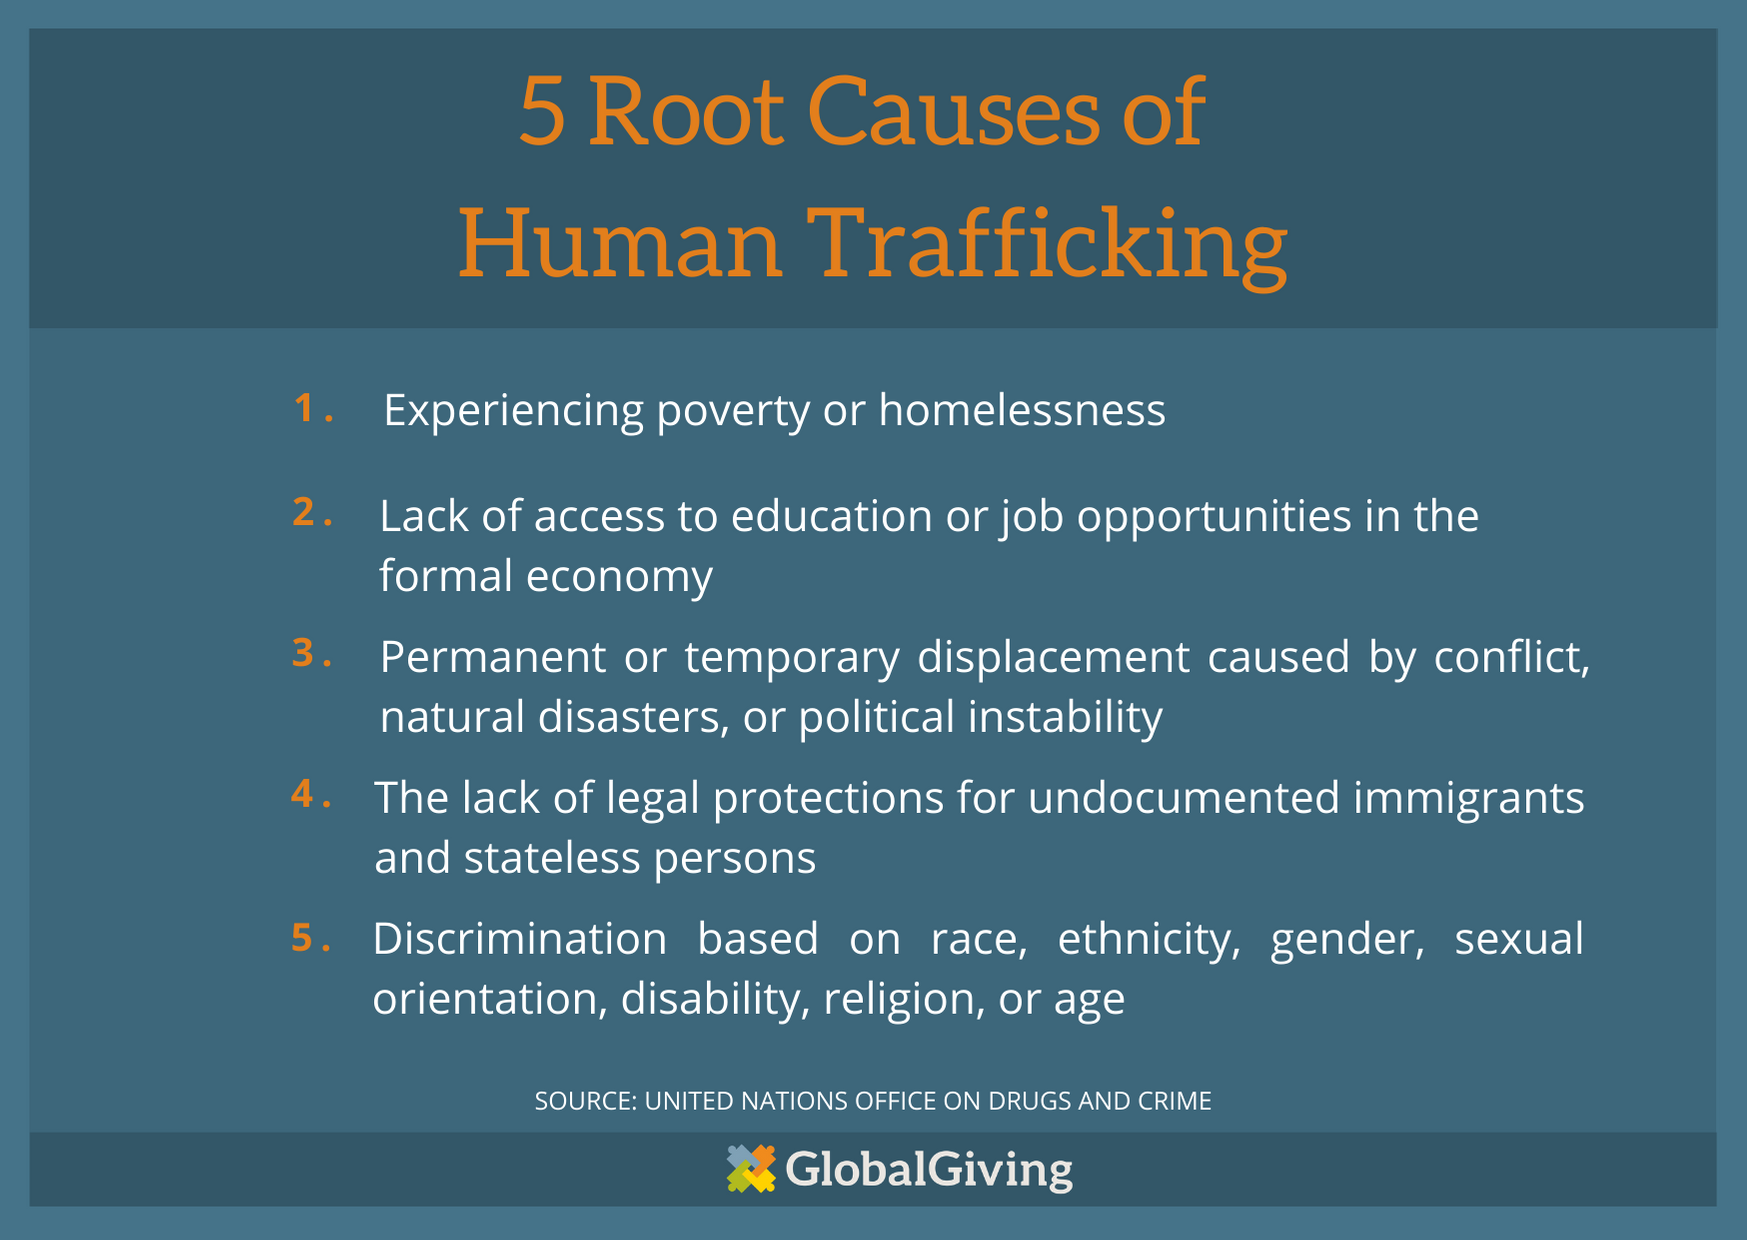 The root causes of human trafficking infographic